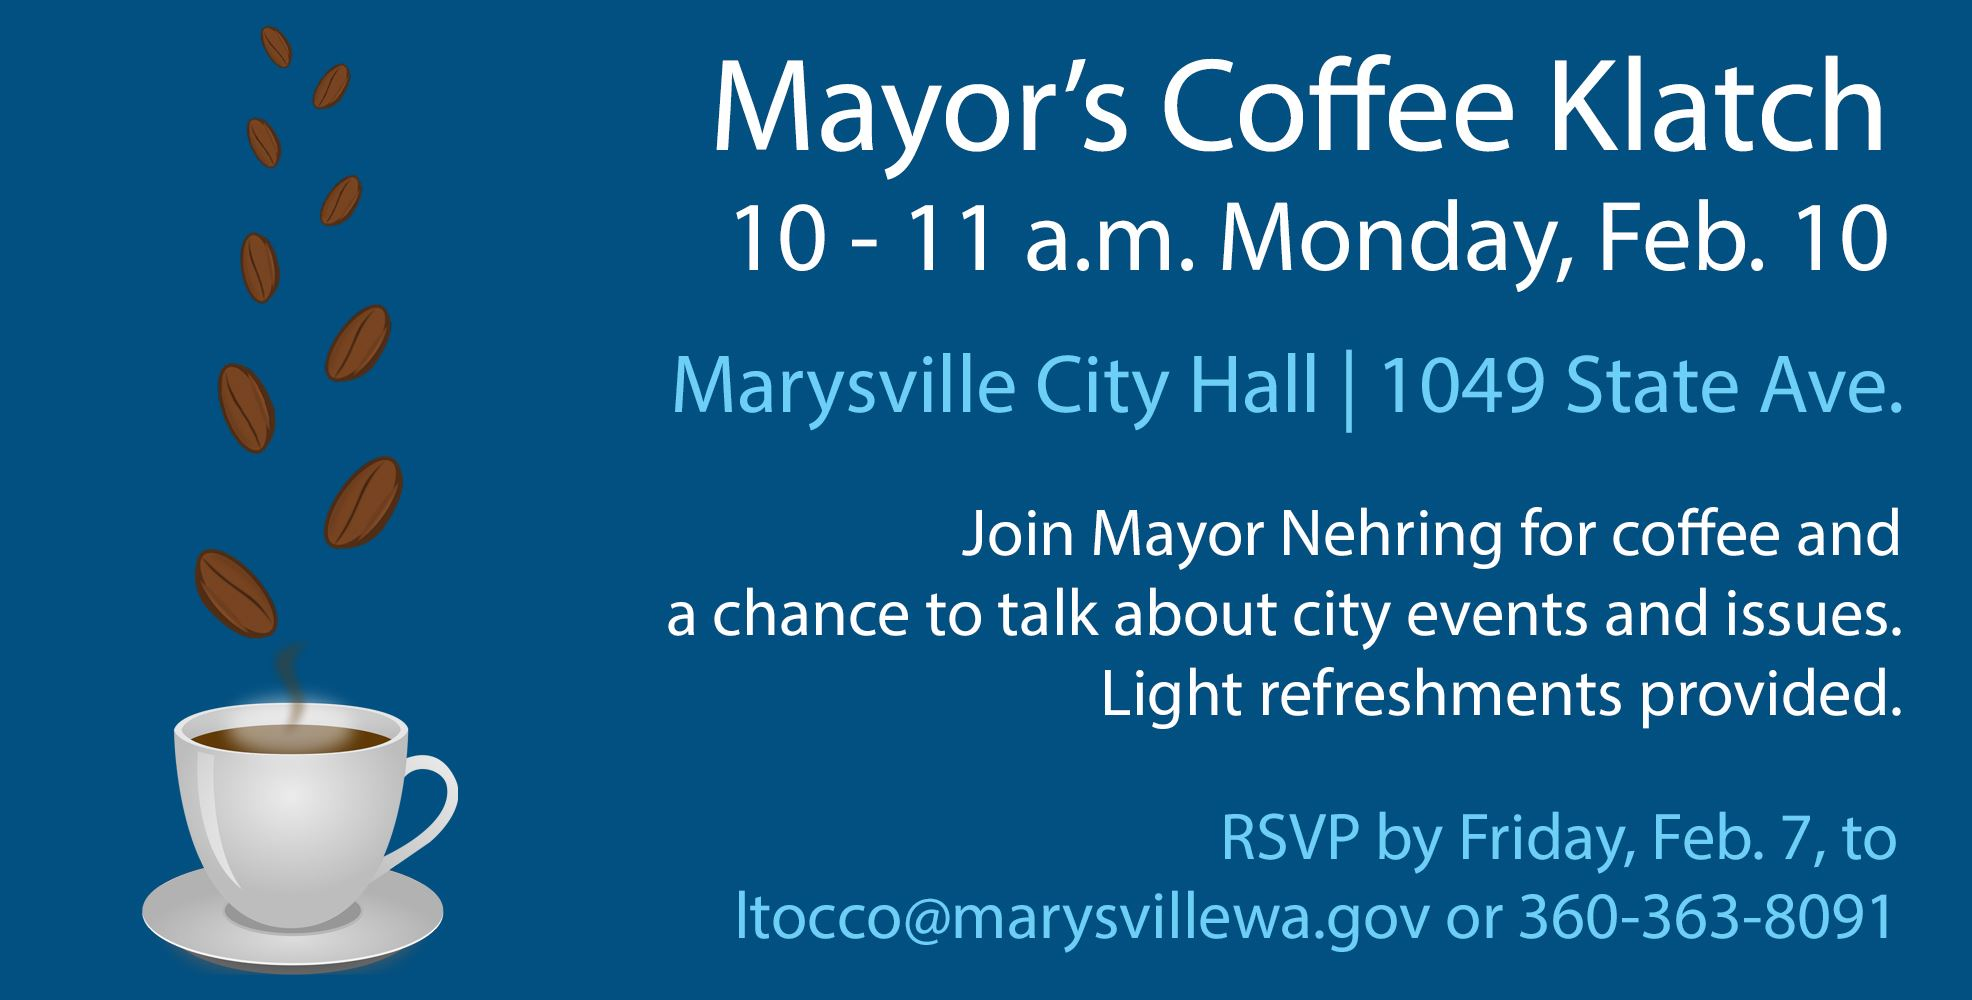 Mayor's Coffee Klatch on Feb. 10 from 10 to 11 a.m. at Marysville City Hall